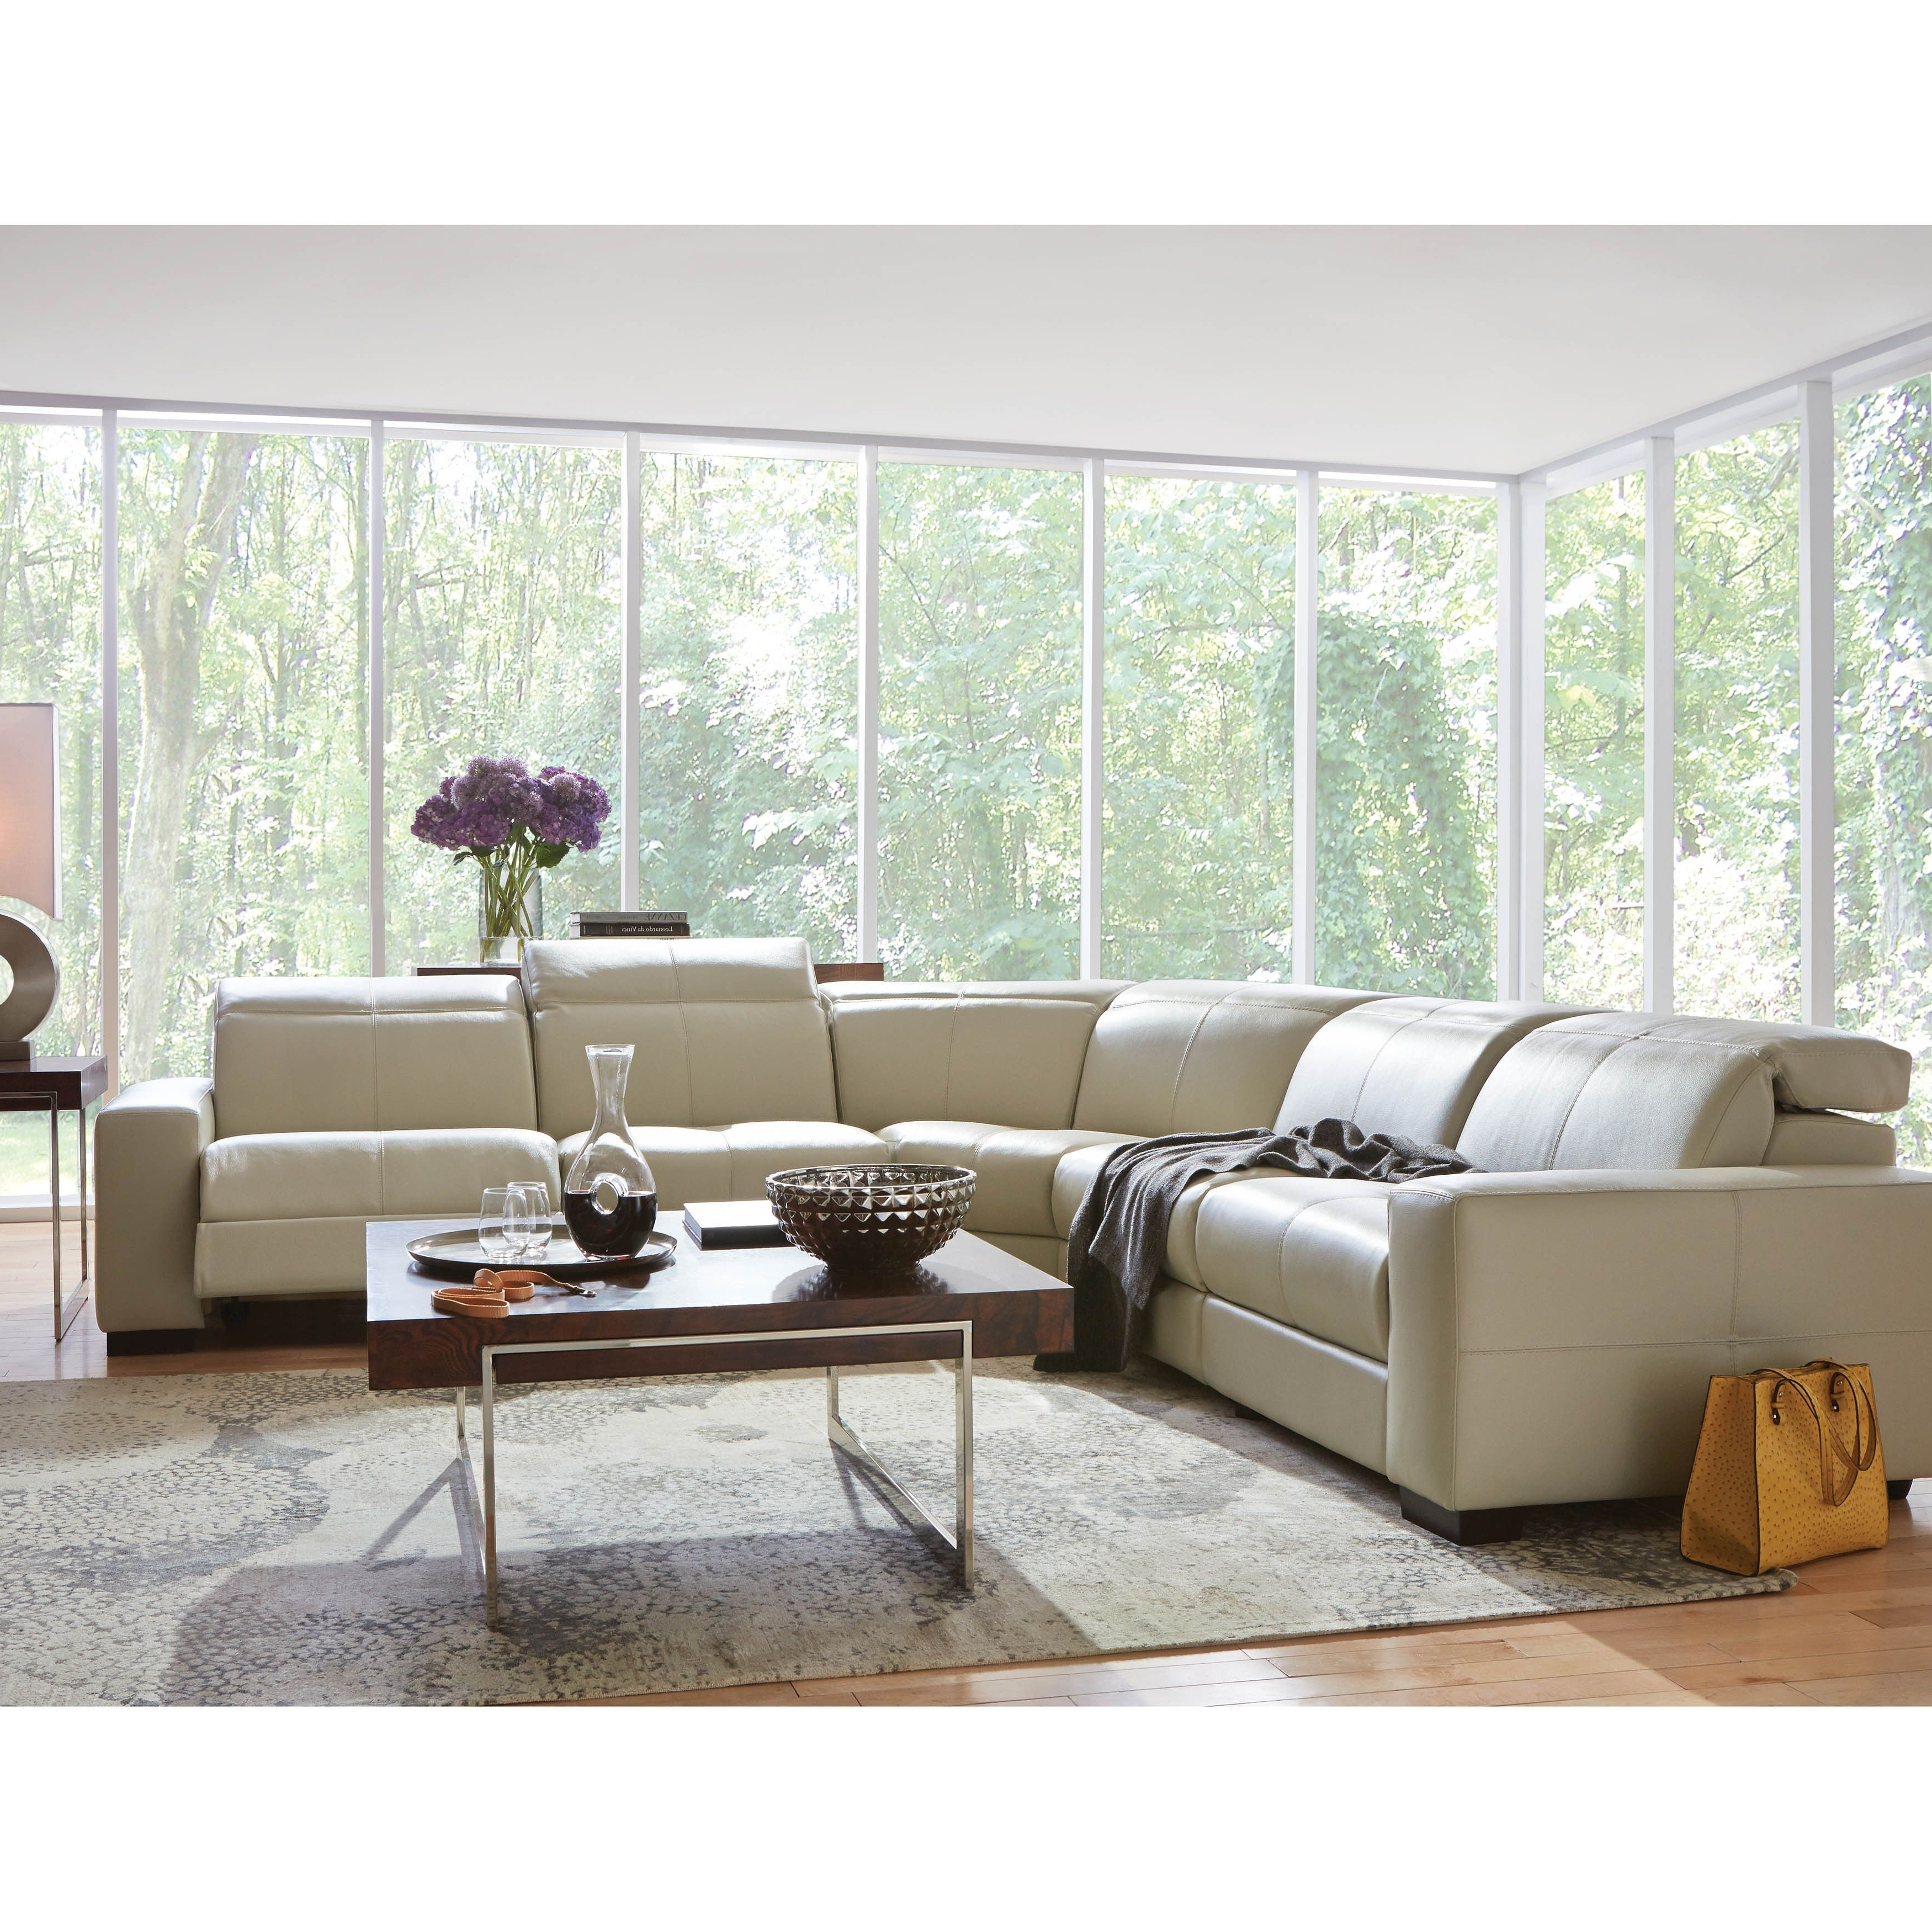 Sectional Sofas Art Van Regarding Fashionable Cool, Clean, Contemporary And It Reclines! The Gianna Reclining (View 14 of 20)